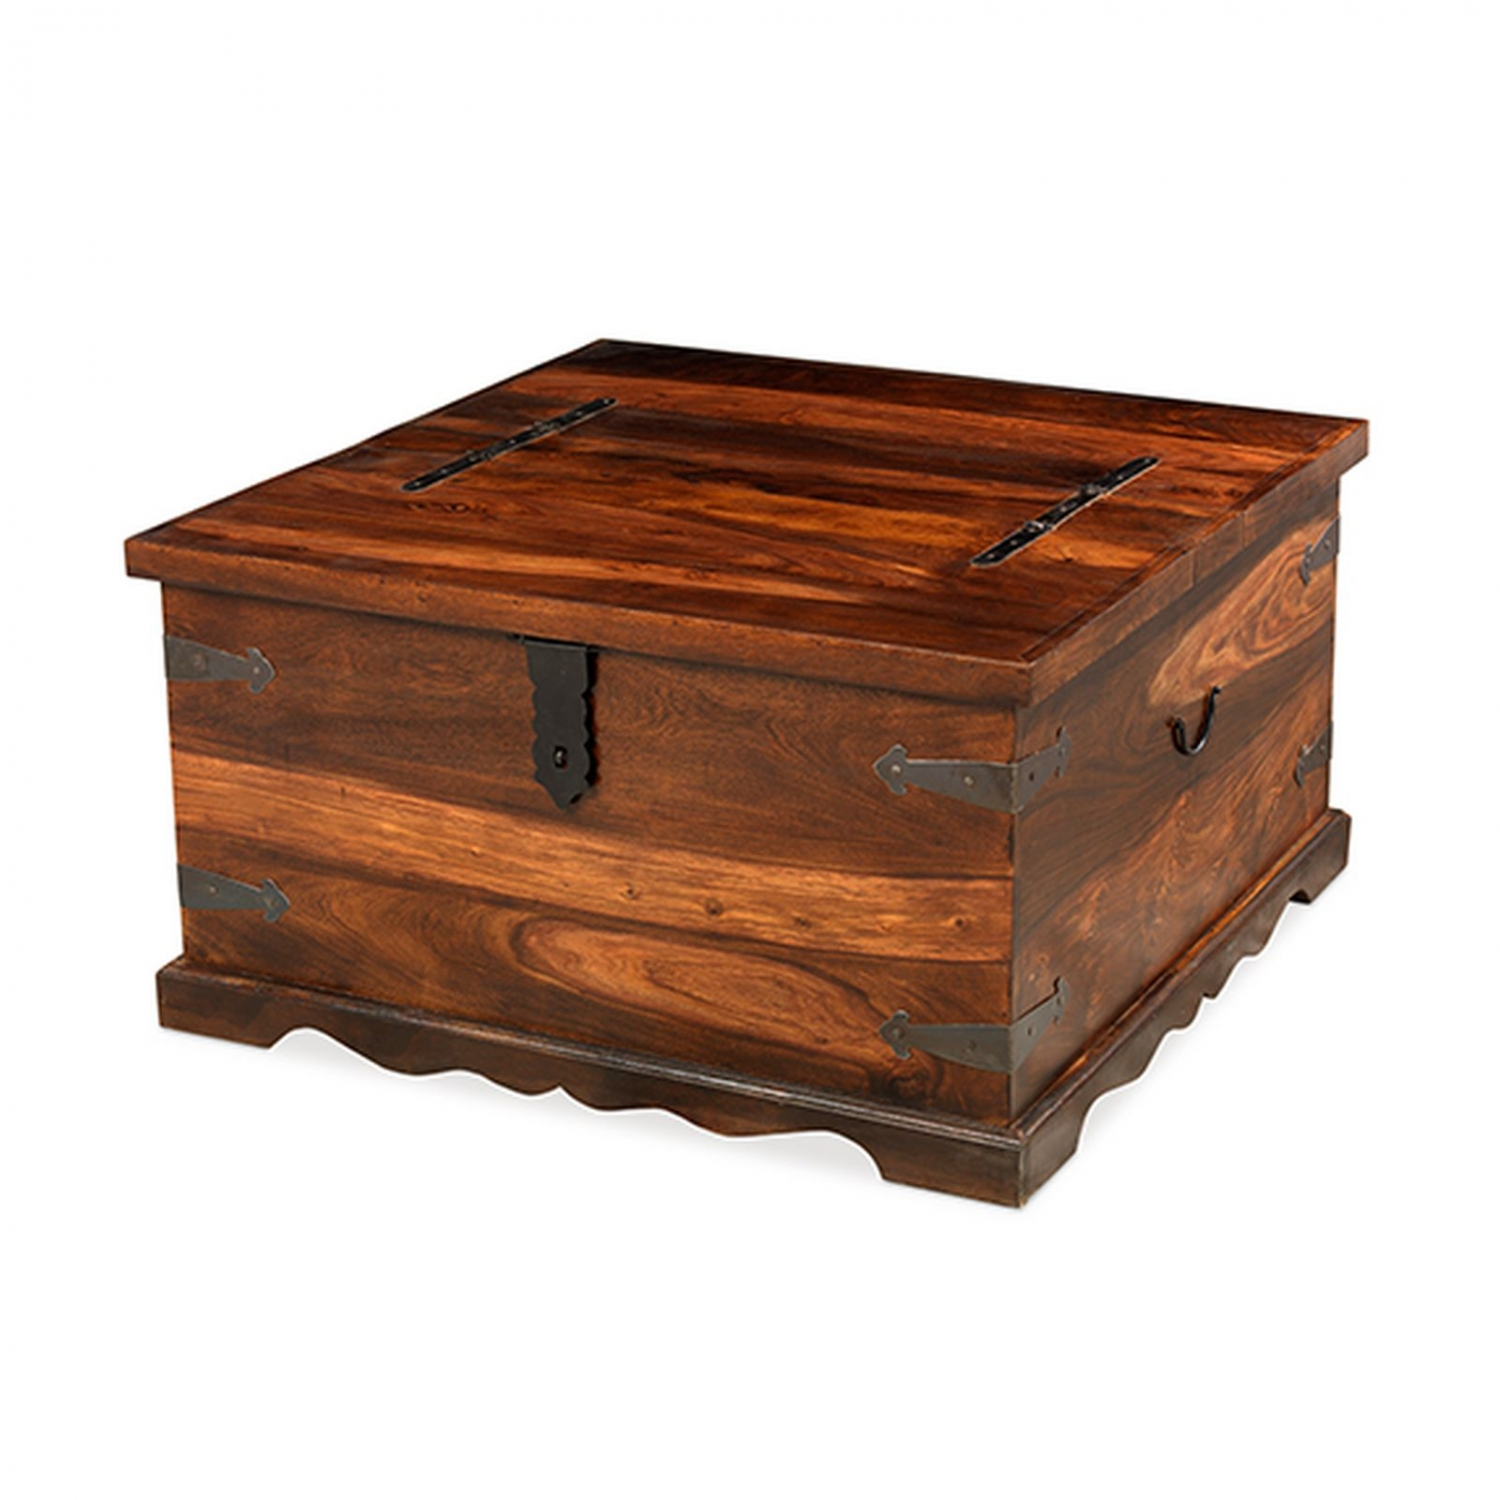 Bengal Sheesham Indian Furniture Square Coffee Table Storage Trunk Ebay